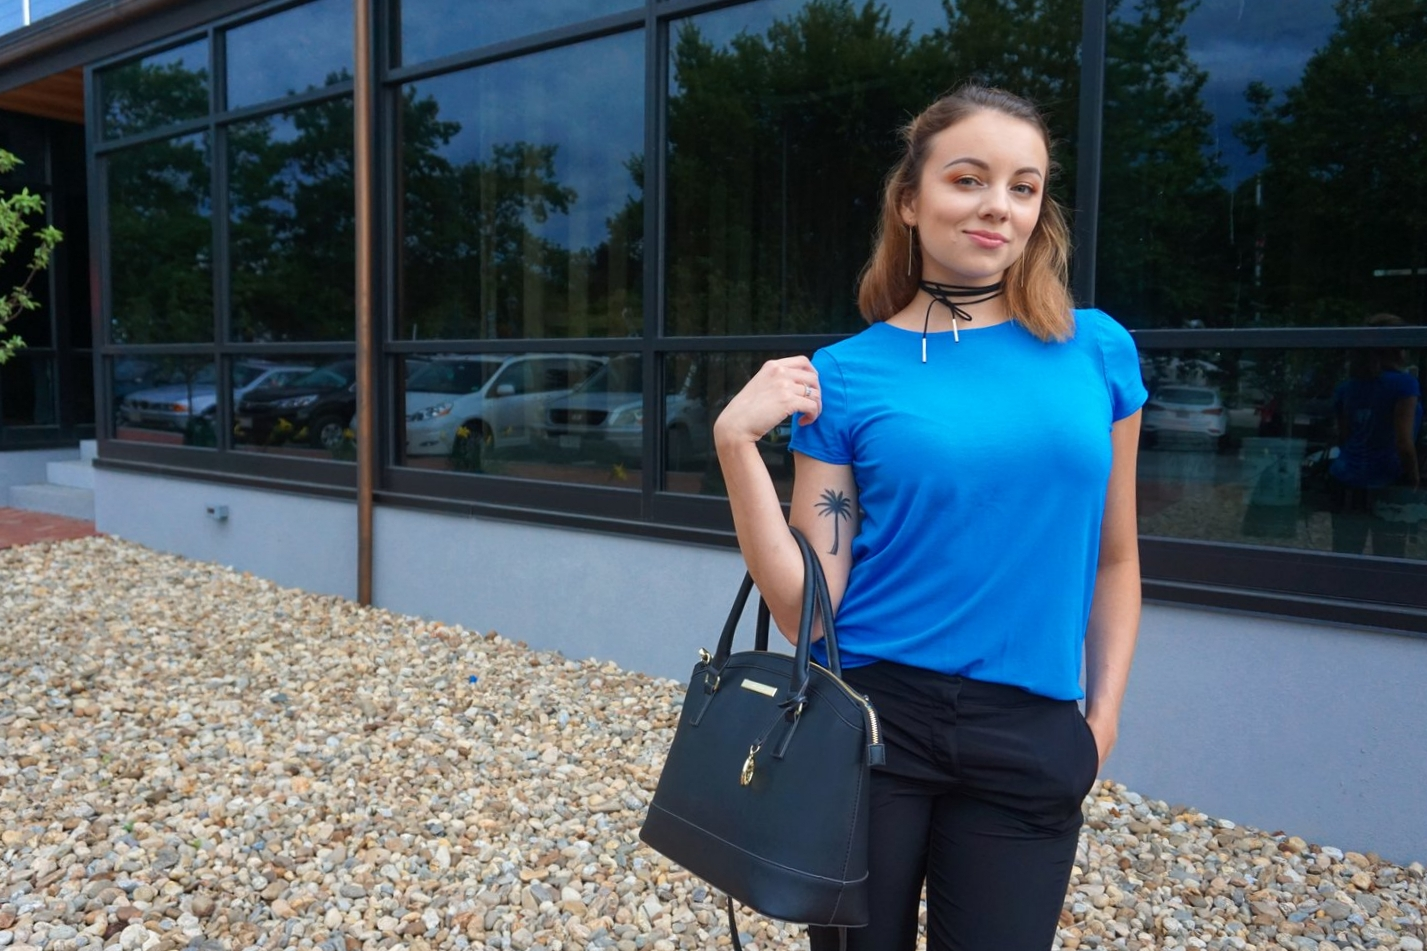 A simple blue top: one of the wardrobe essentials.